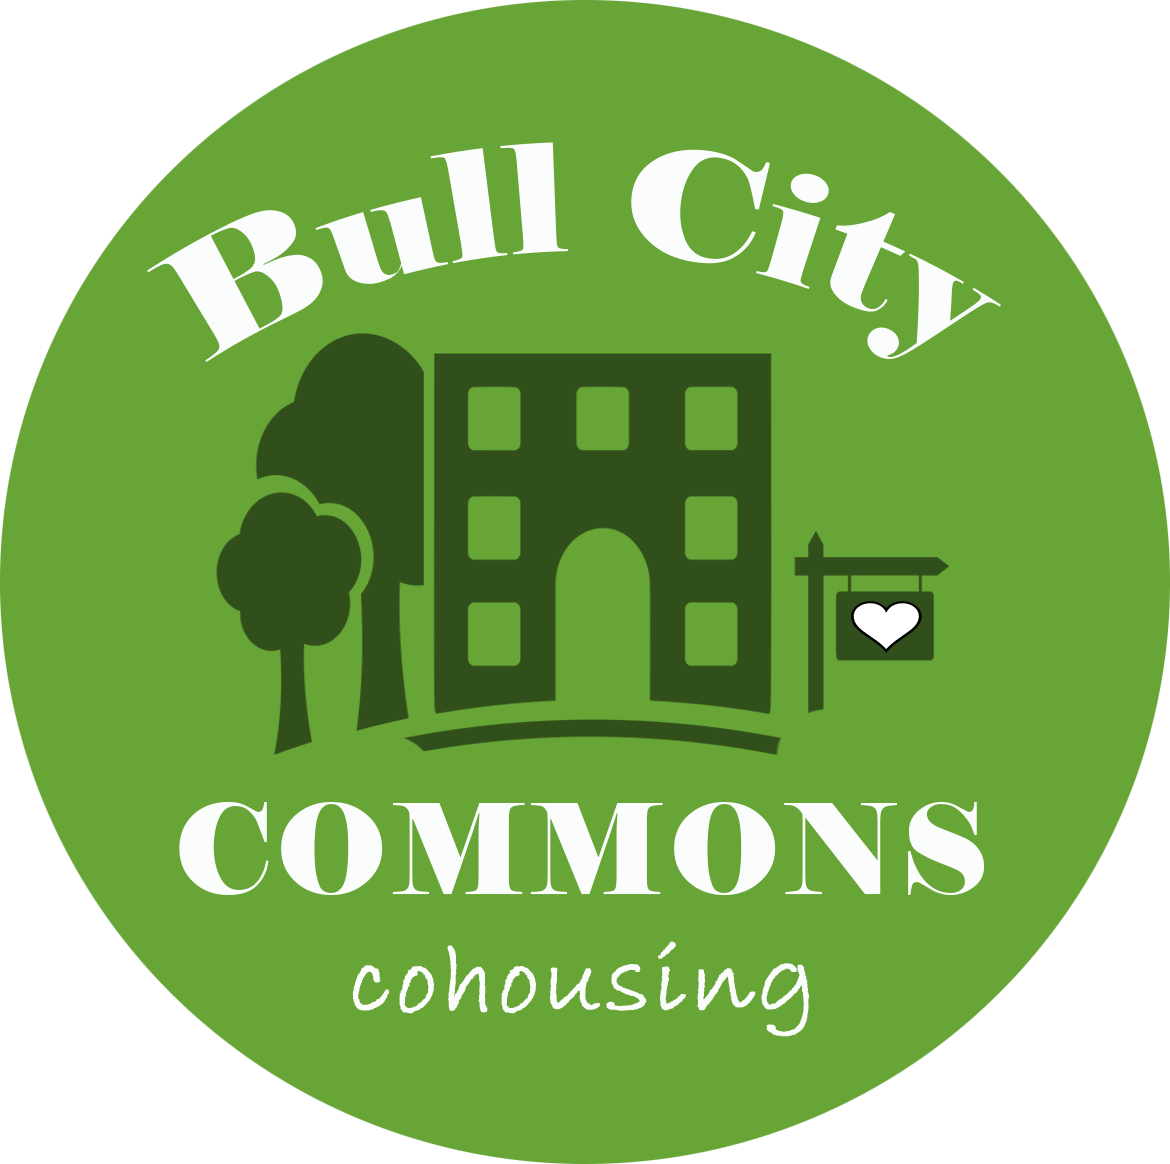 Bull City Commons Cohousing